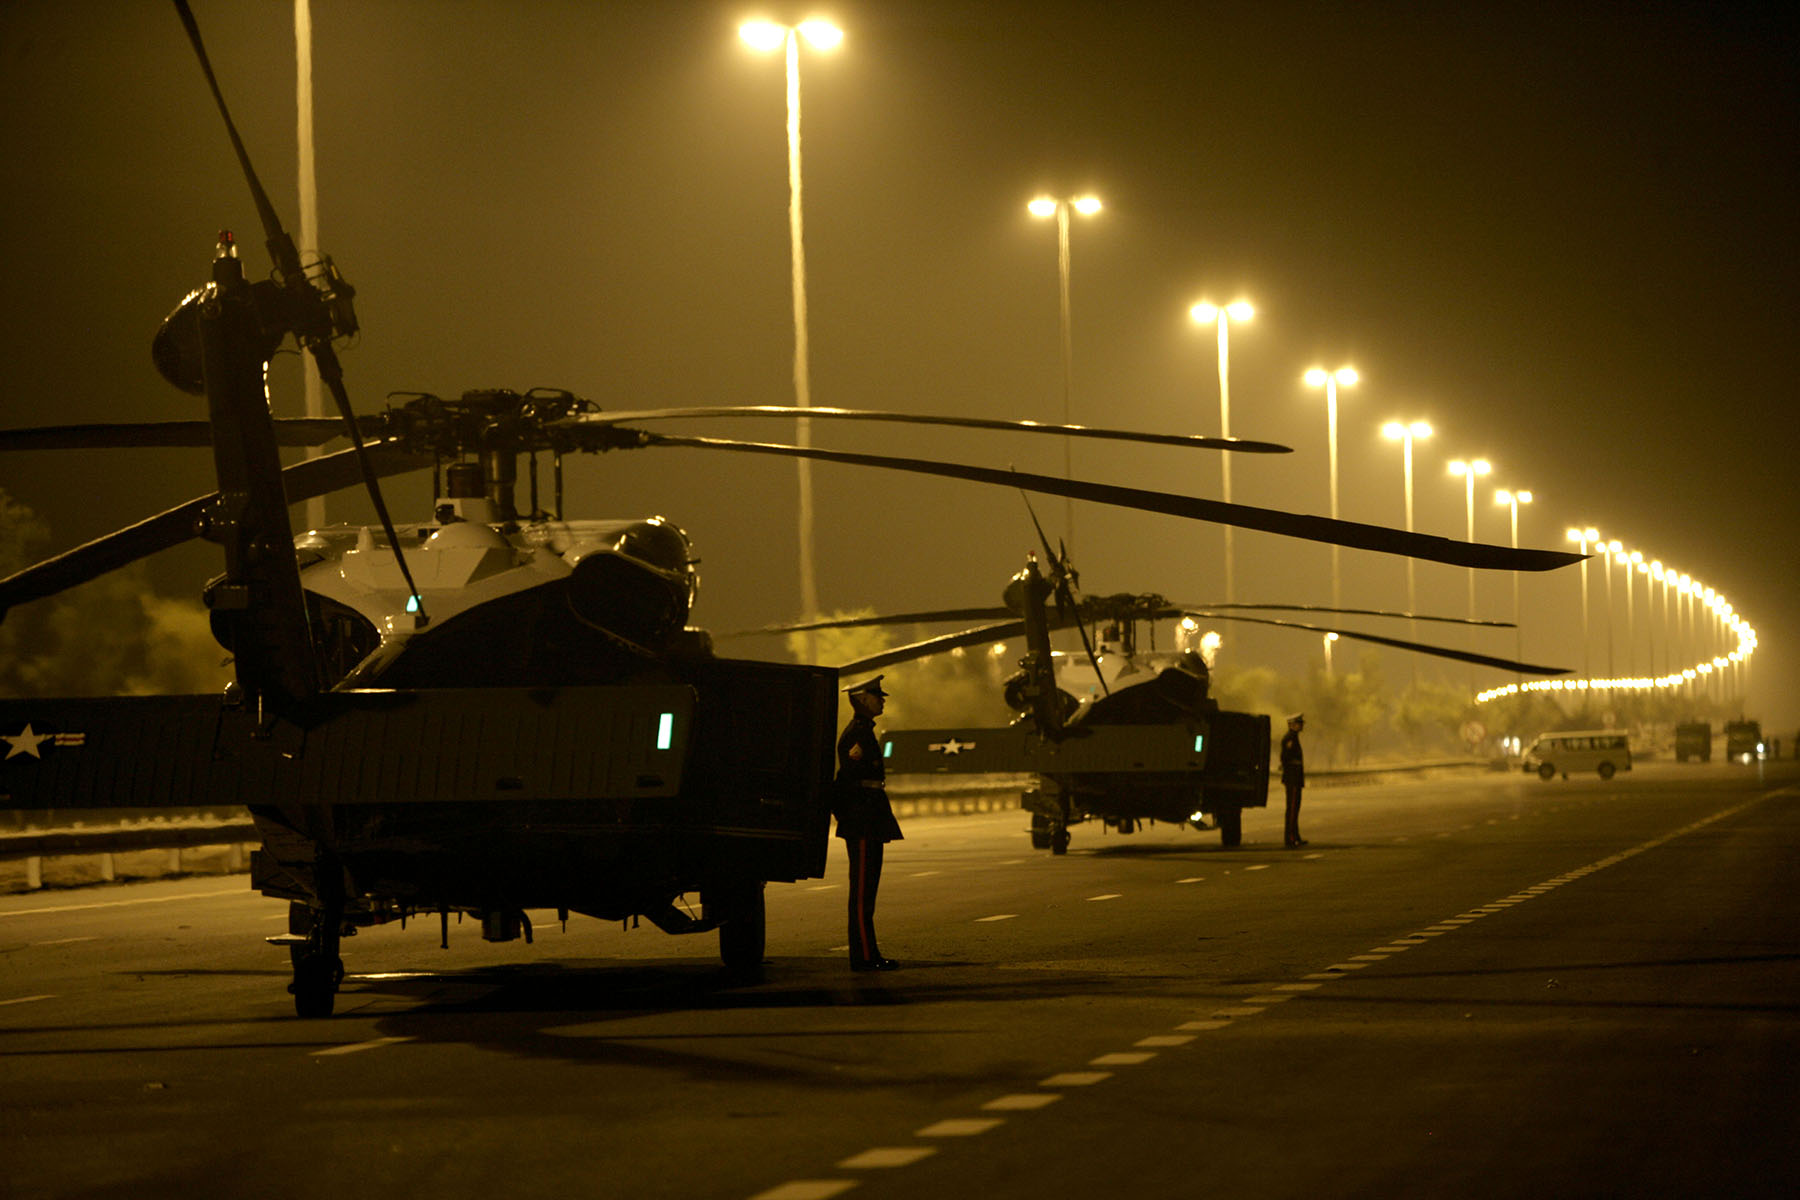 Marines wait for the arrival of U.S. President George W. Bush as two Marine One helicopters are parked on a closed-off road near Sowaihan in the United Arab Emirates January 13, 2008. Bush was the guest of honor at a dinner hosted by Abu Dhabi Crown Prince Sheikh Mohammed Bin Zayed Al Nahyan at his desert retreat. Photo by Brooks Kraft/Corbis